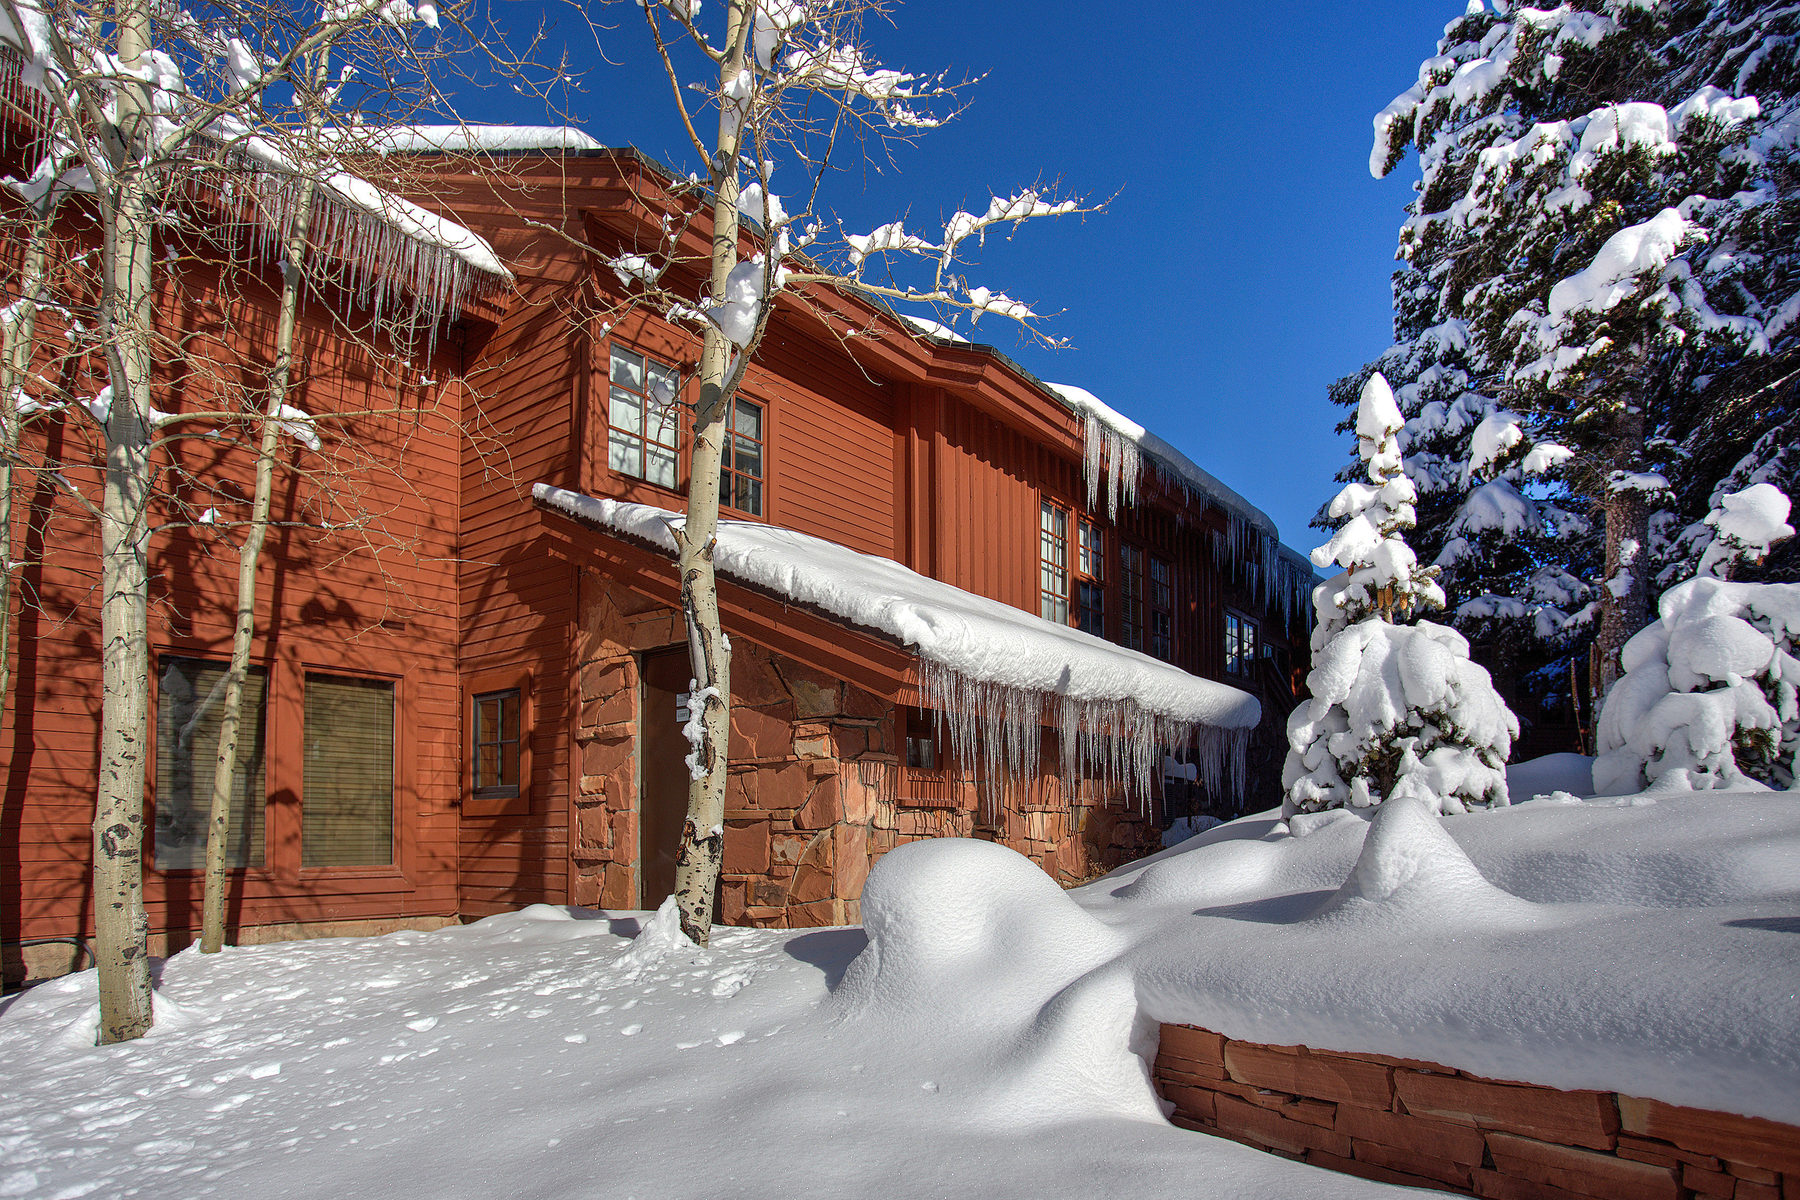 Single Family Home for Sale at Incredible Views & Direct Access to Last Chance/Success Ski Runs 8200 E Royal St #11 Park City, Utah 84060 United States